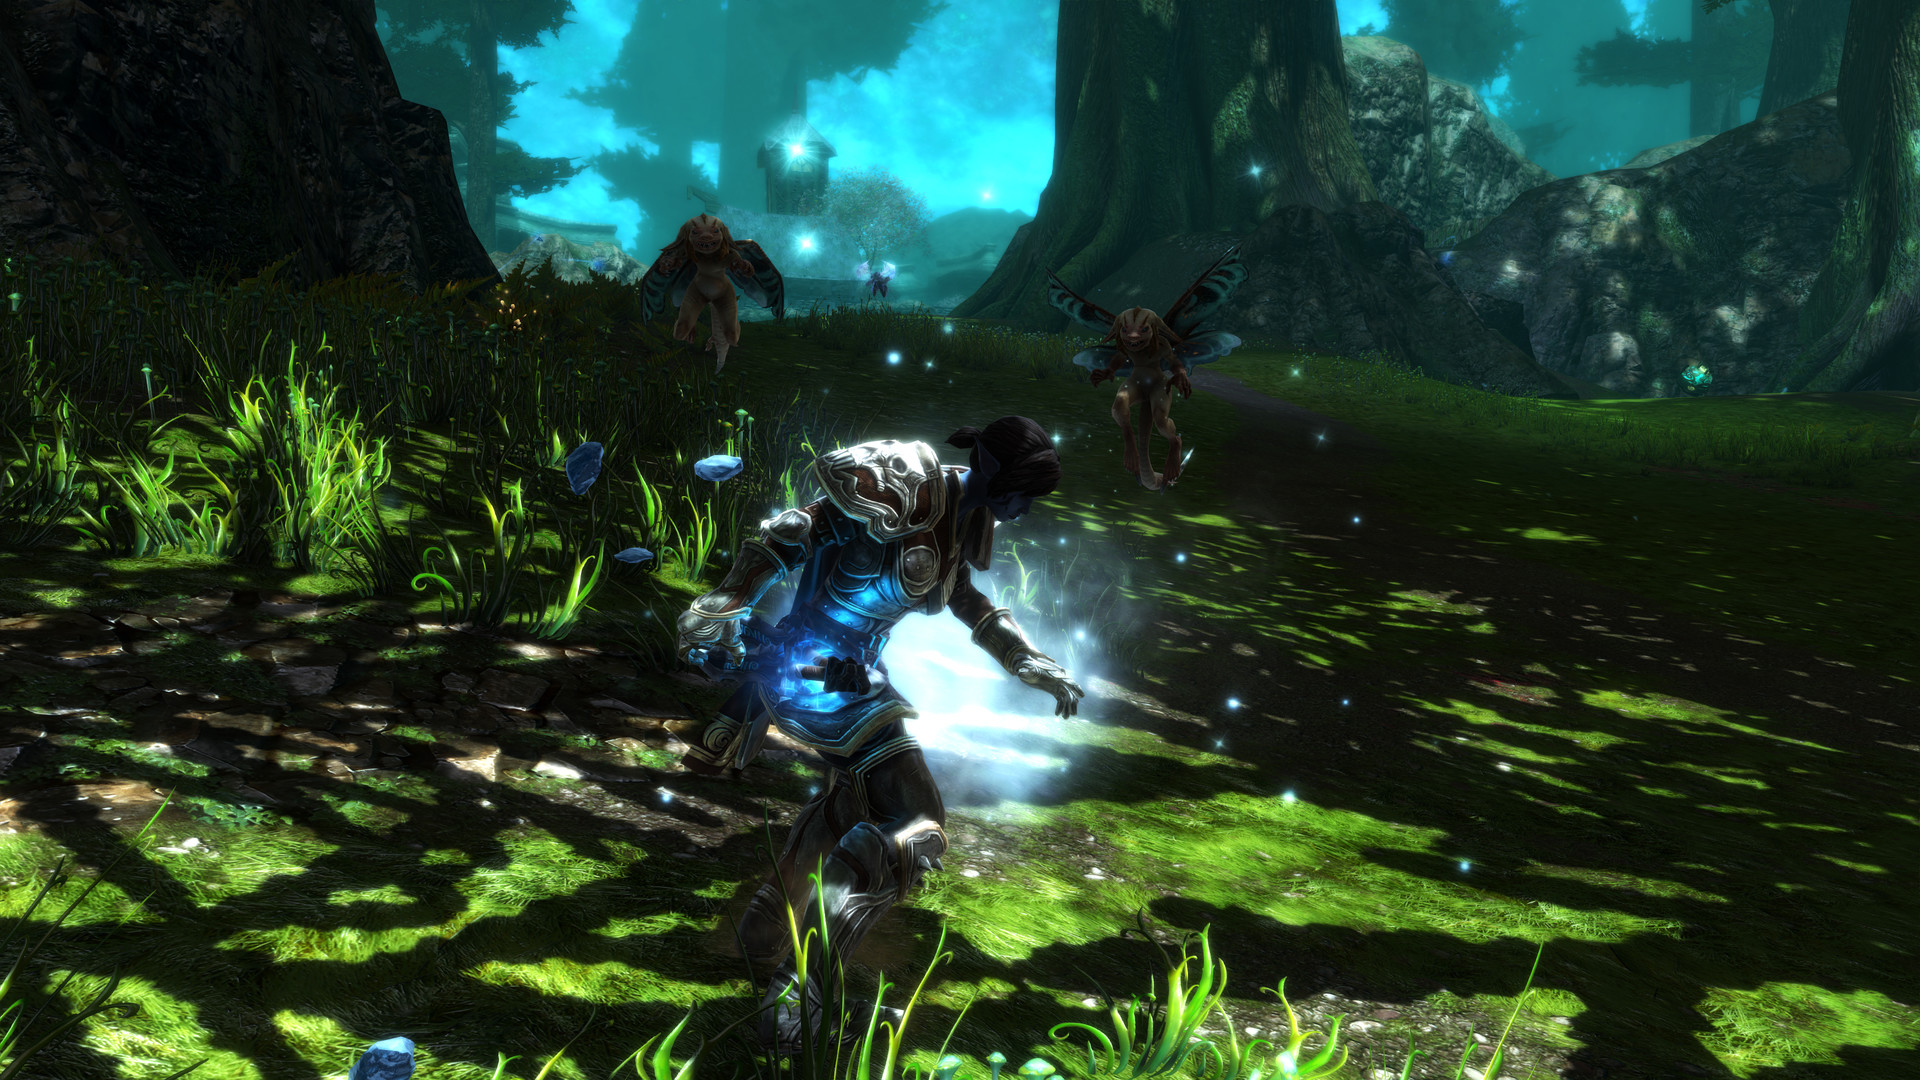 #Kingdoms of Amalur: Re-Reckoning